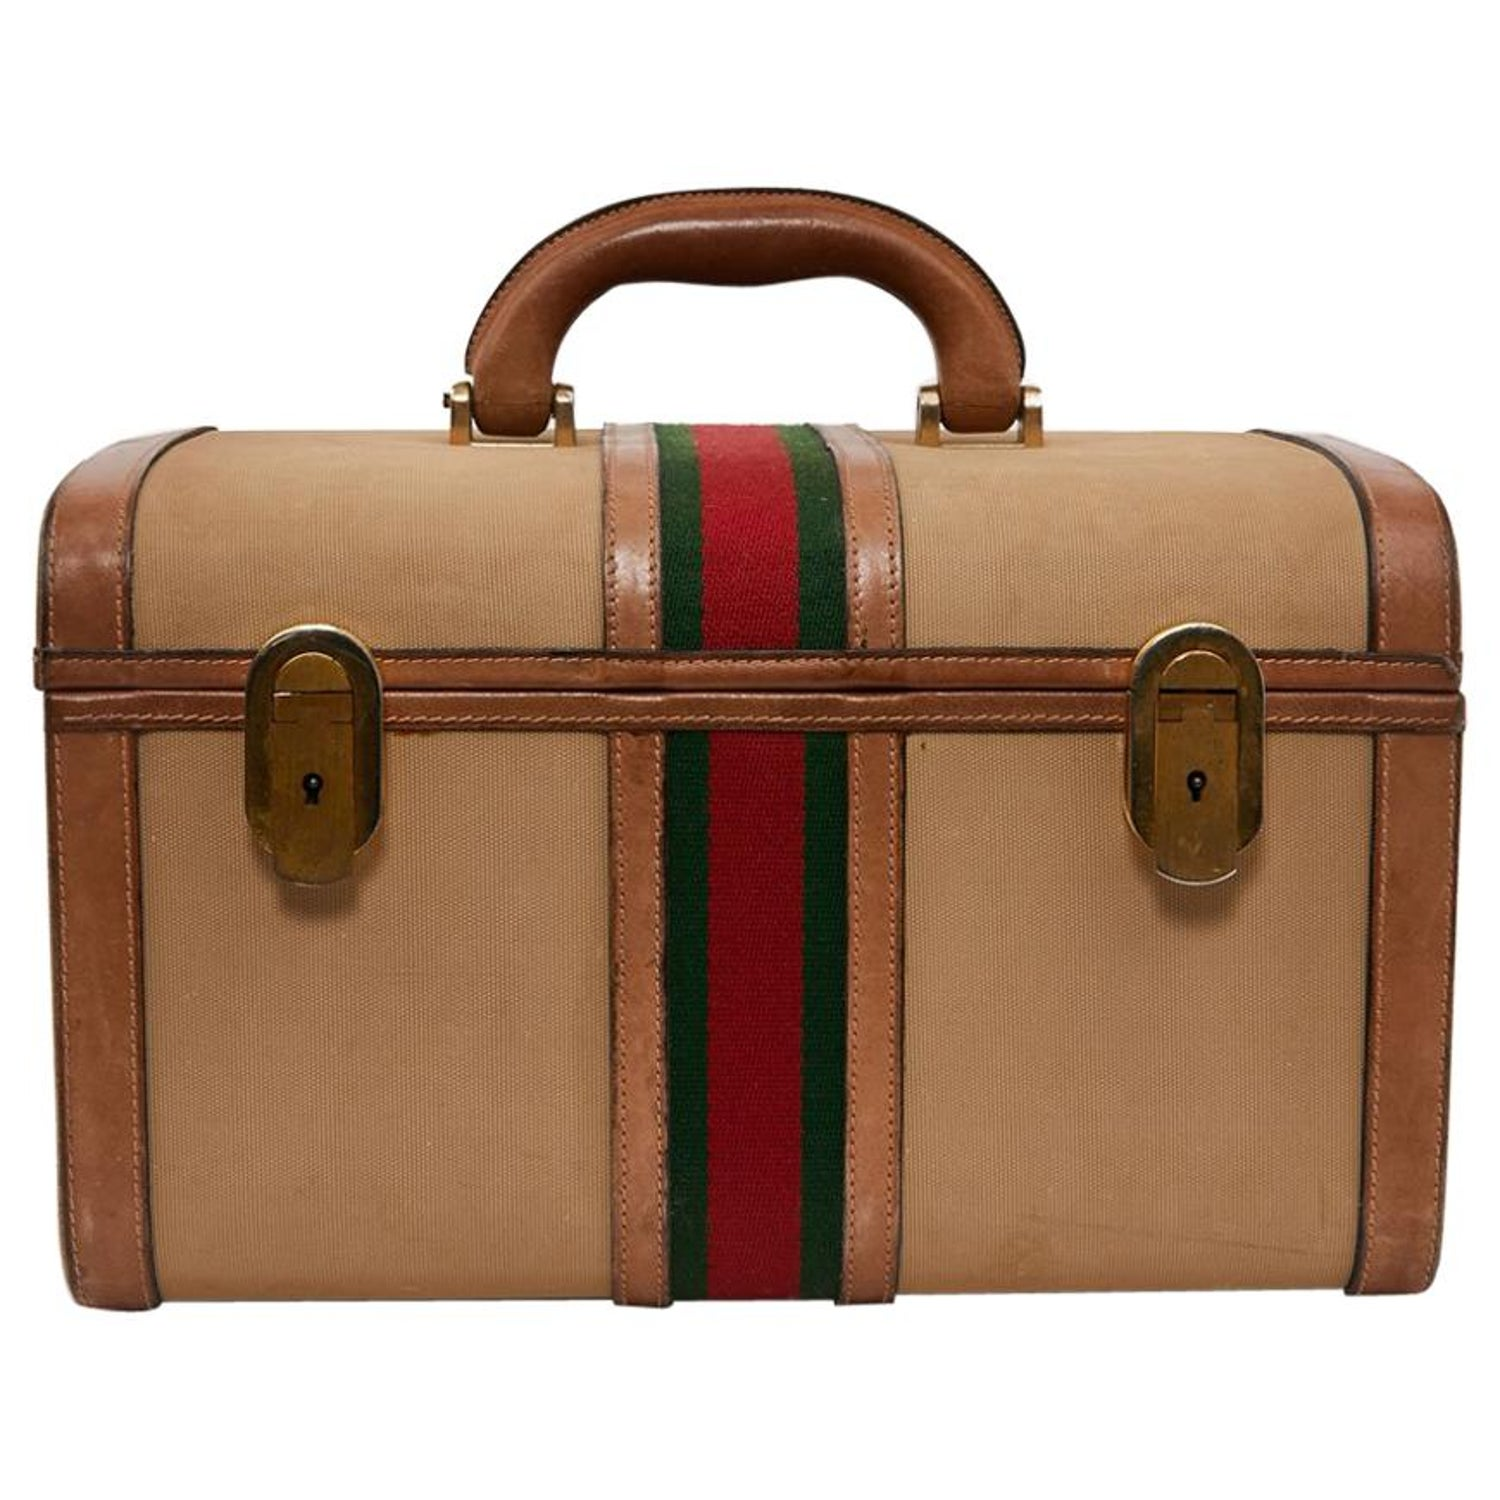 acd06c72b02 GUCCI Vintage Vanity Case in Beige and Brown Canvas and Leather For Sale at  1stdibs